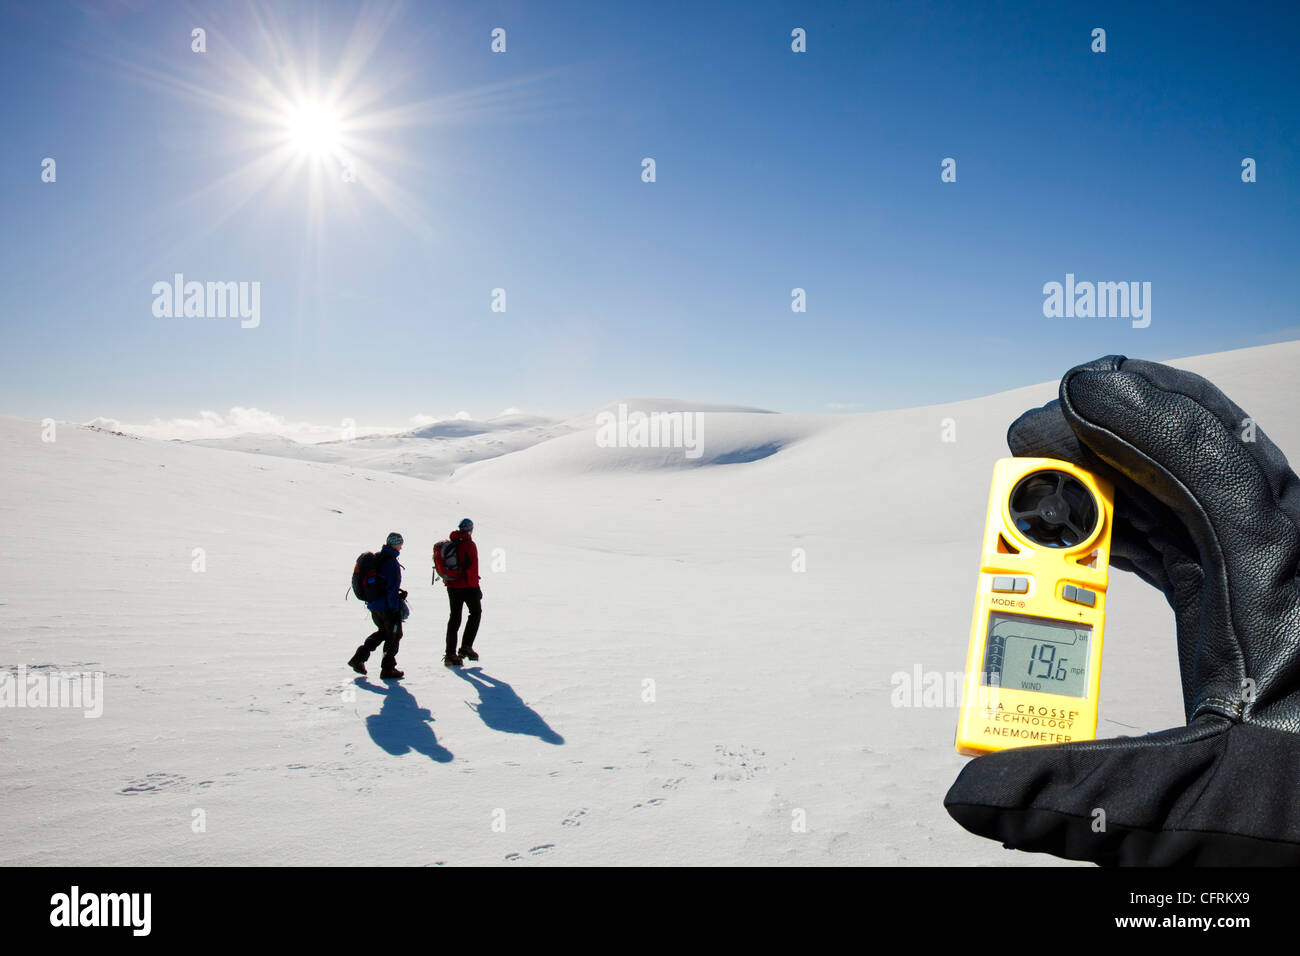 Mountaineers on the Cairngorm plateau, Cairngorm mountains, Scotland, UK, in full winter conditions. Stock Photo